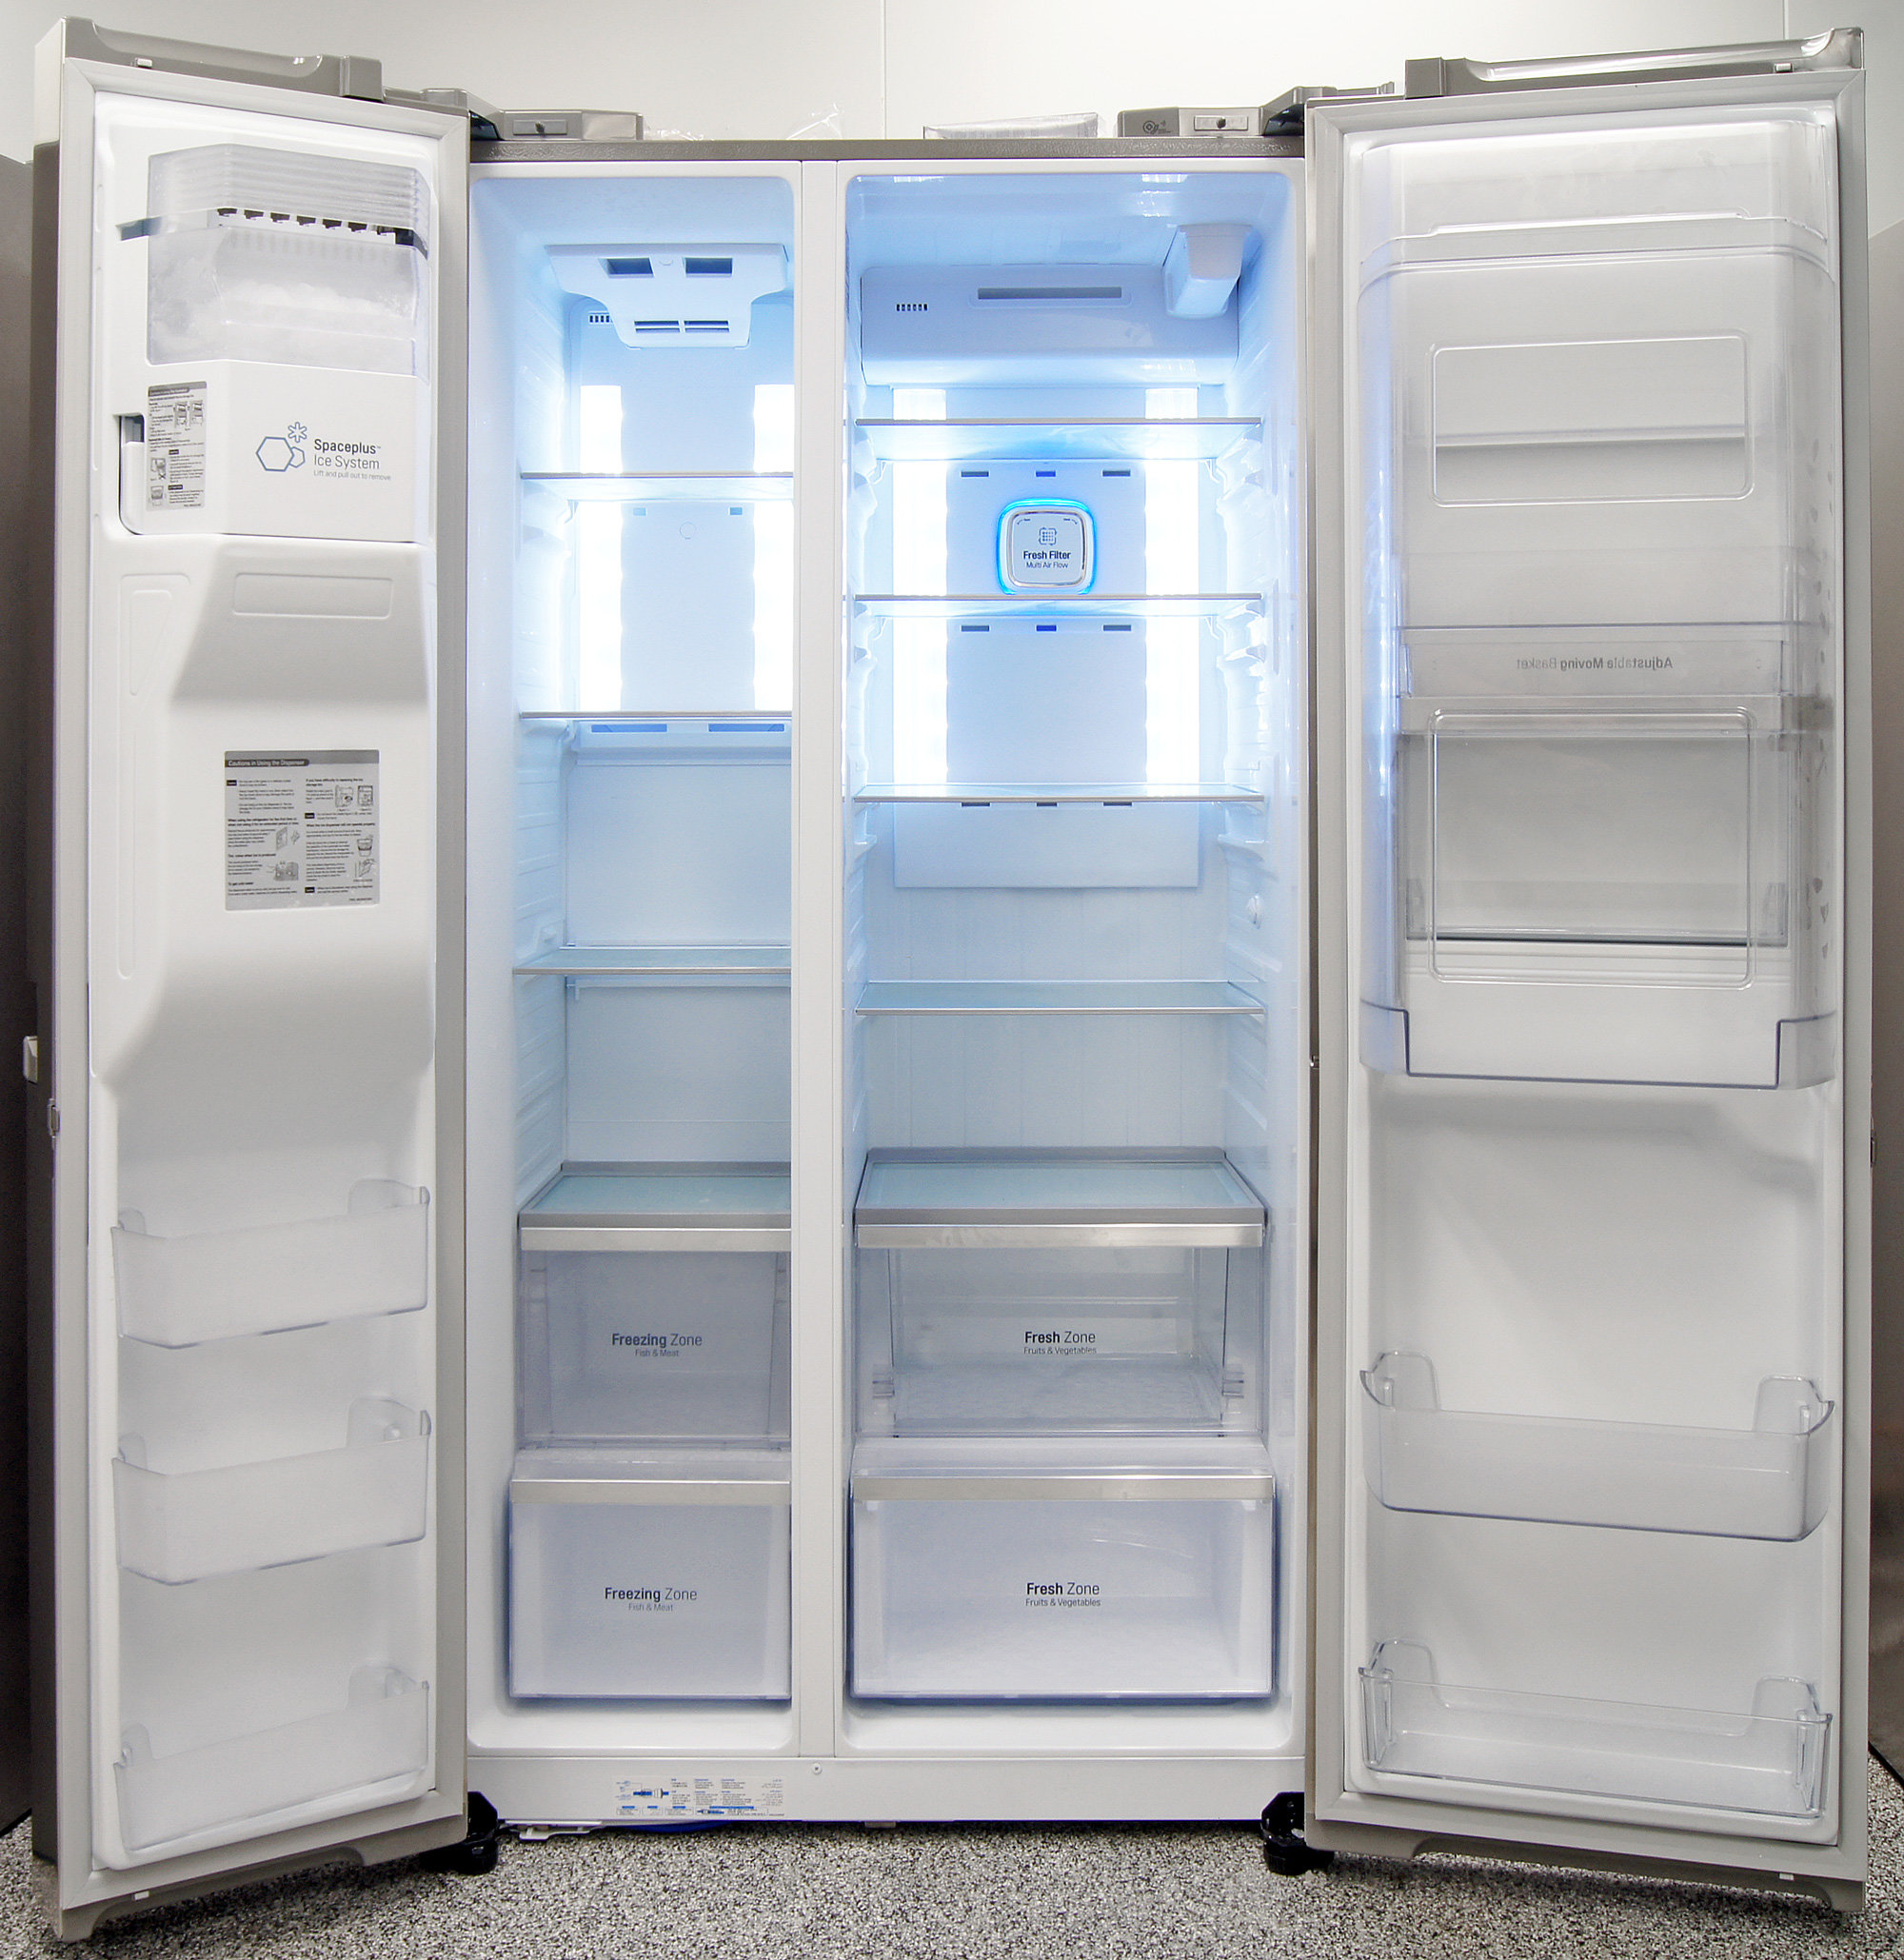 Even though it's a counter-depth, the LG LSC22991ST can hold plenty of food in both compartments.